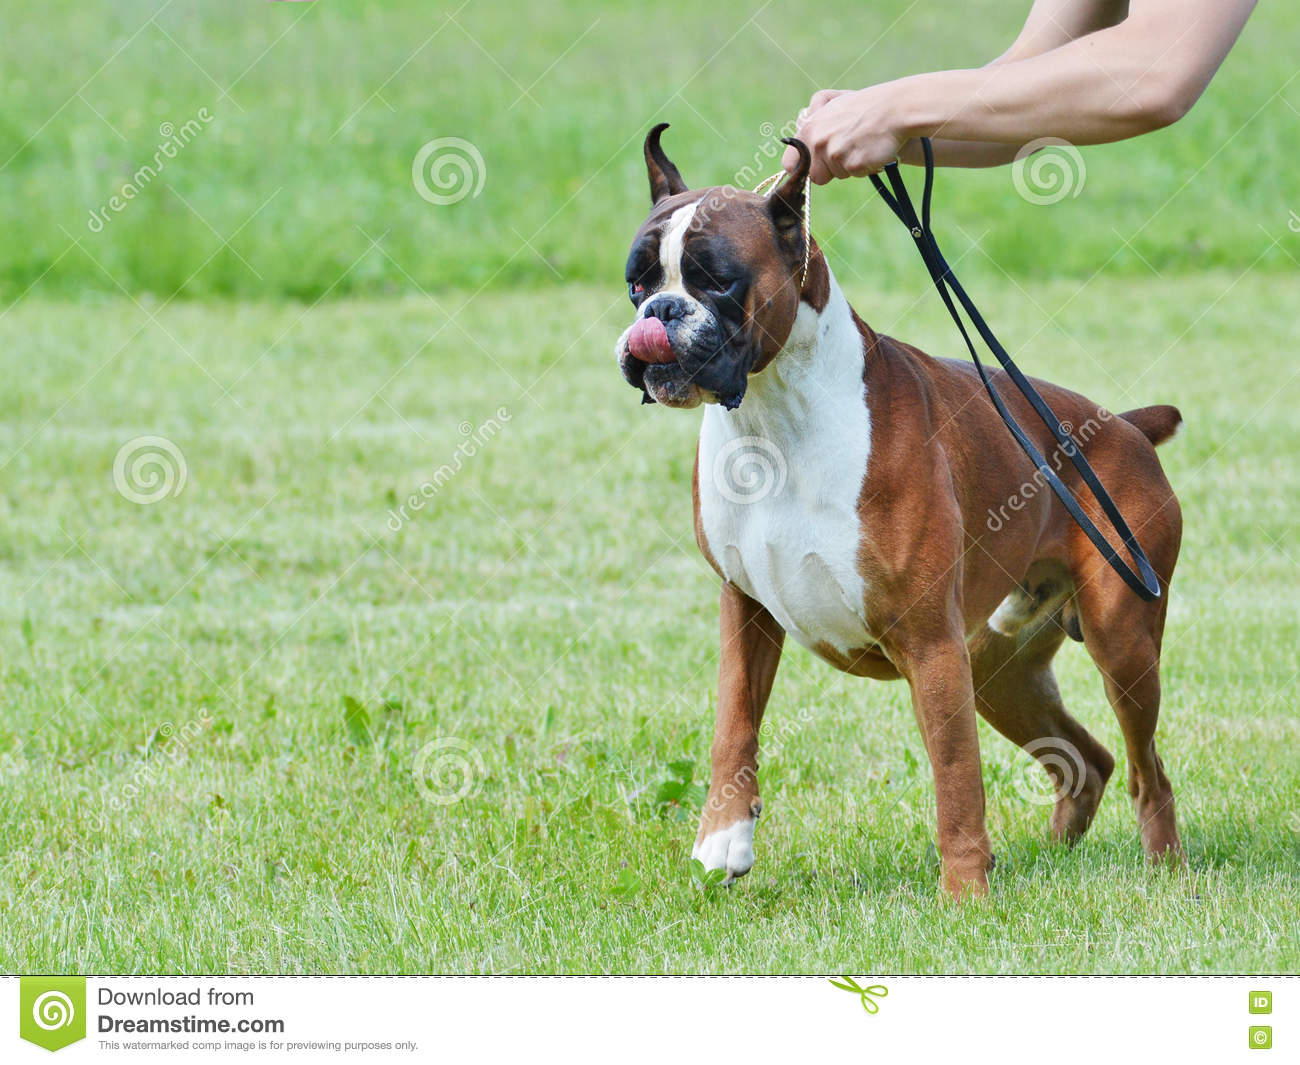 How To Walk A Big Dog That Pulls